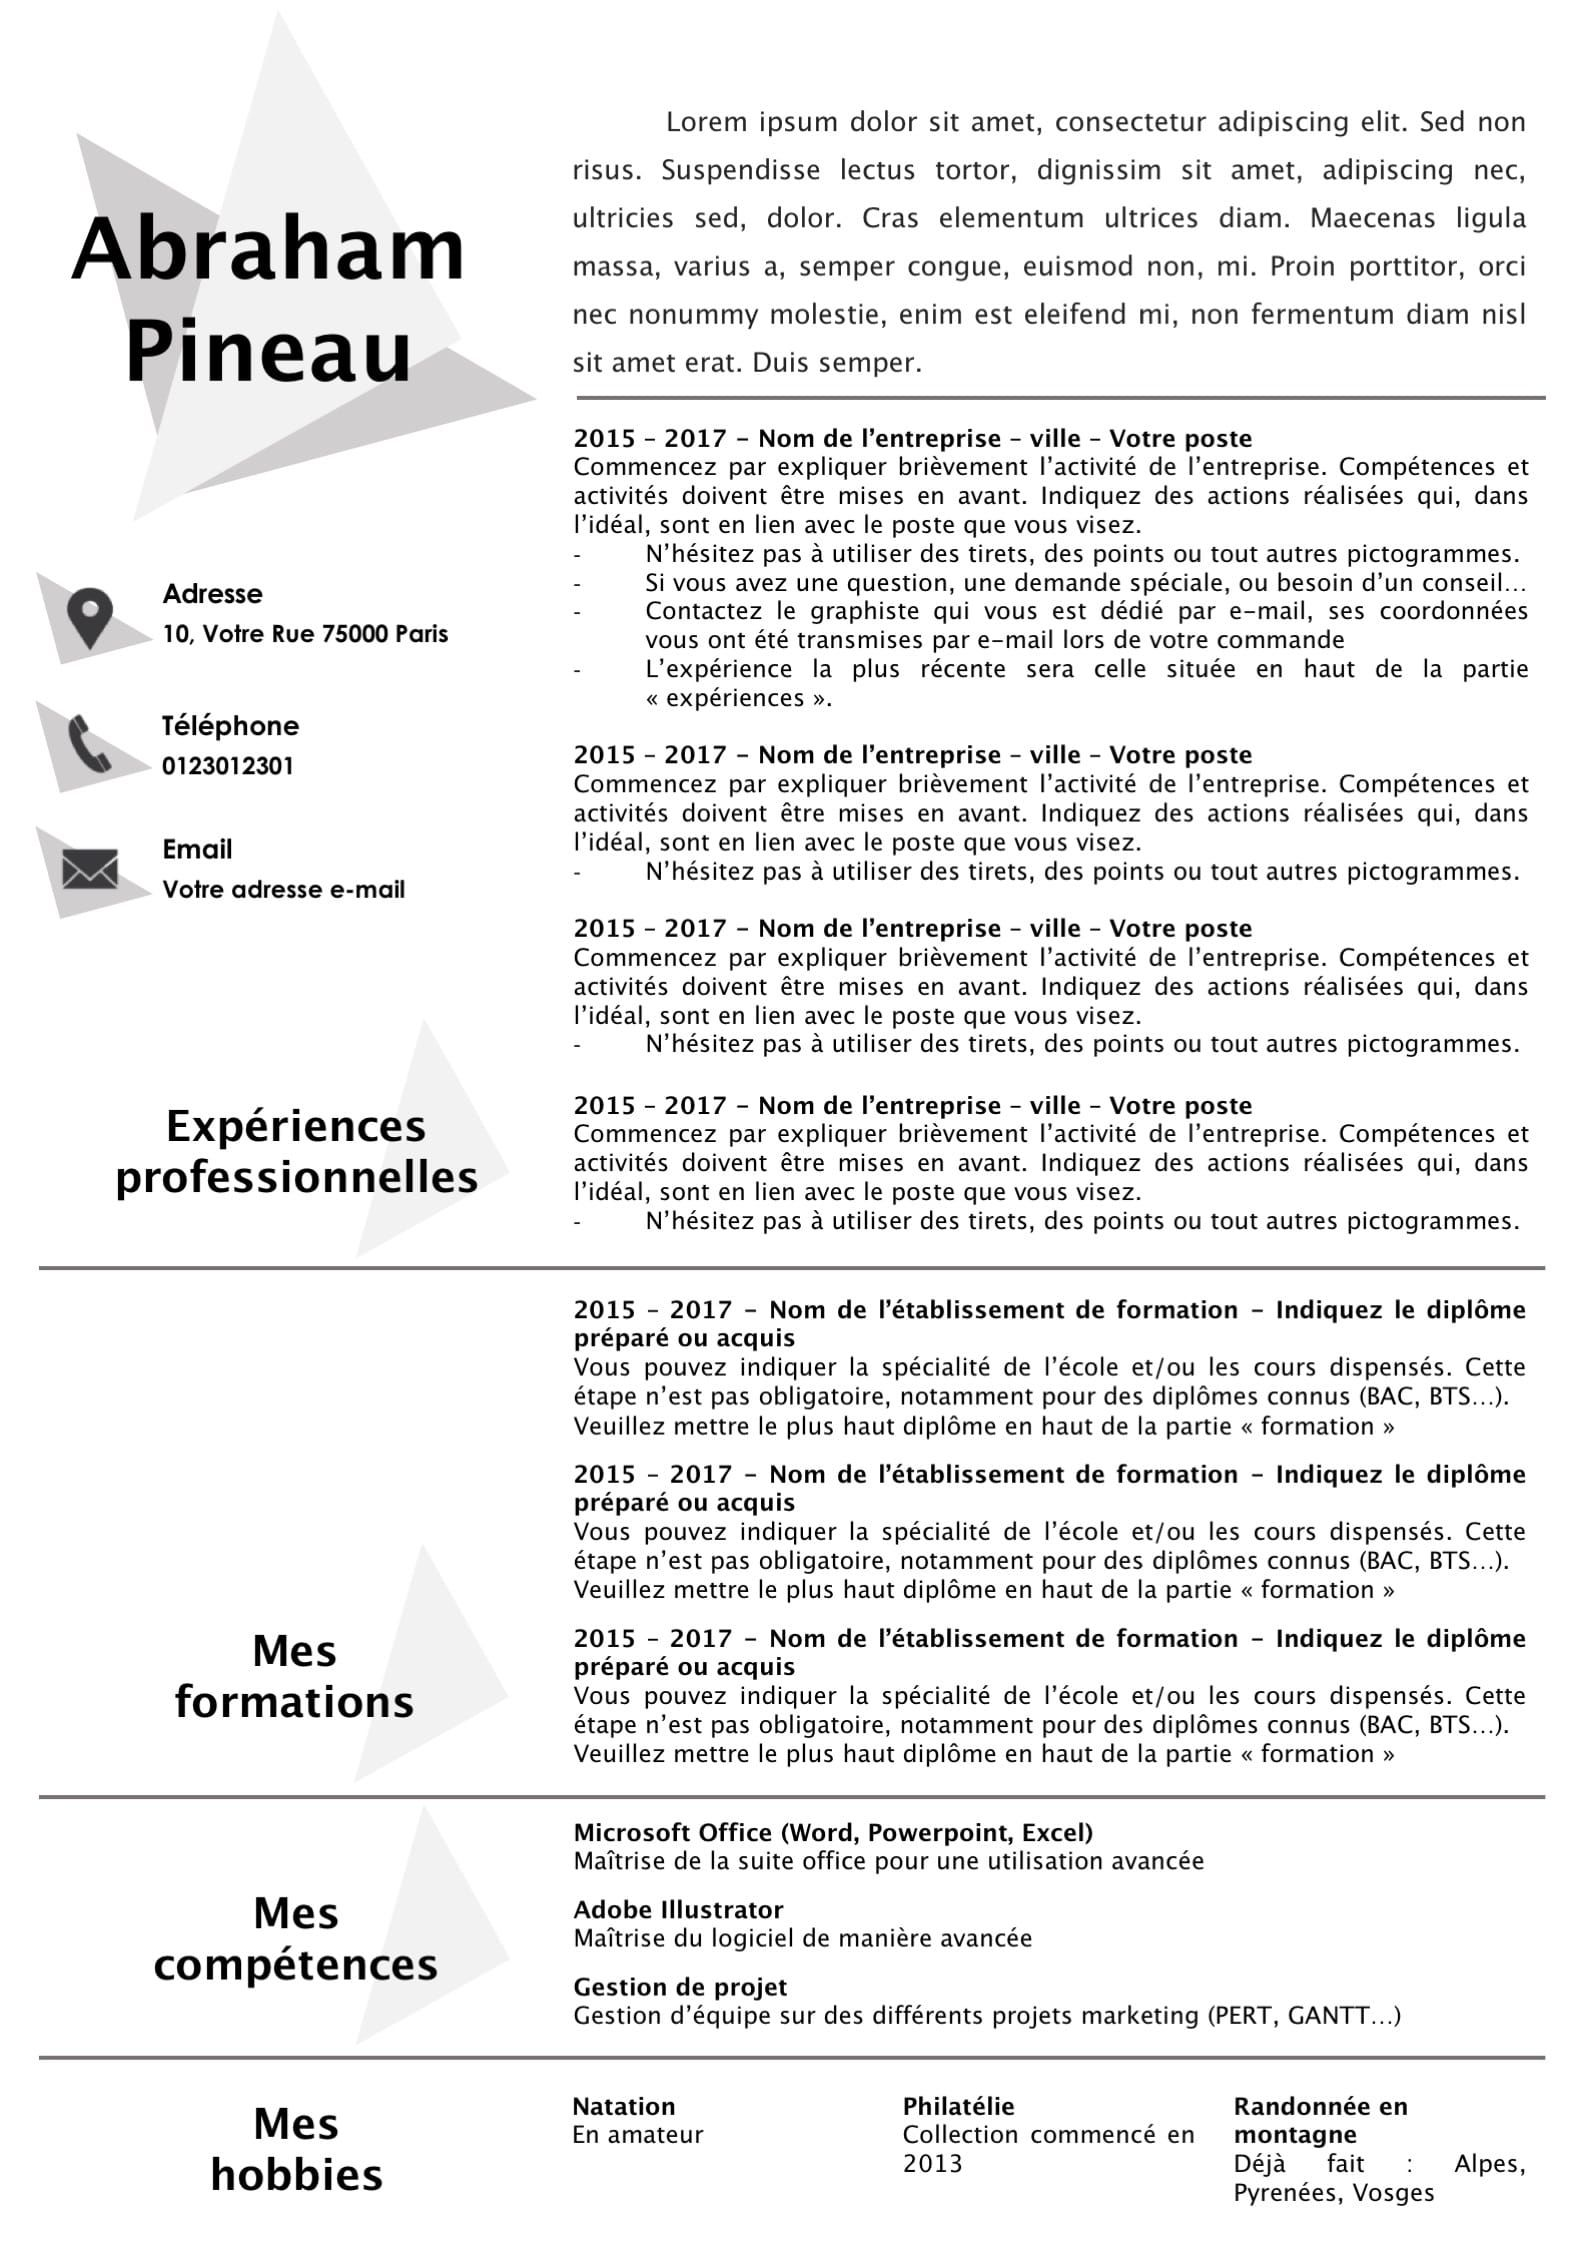 Modele Cv Et Lettre De Motivation Gris Et Epure Modifiable Pour 6 99 Modele De Cv Design Lettre De Motivation Modele Cv